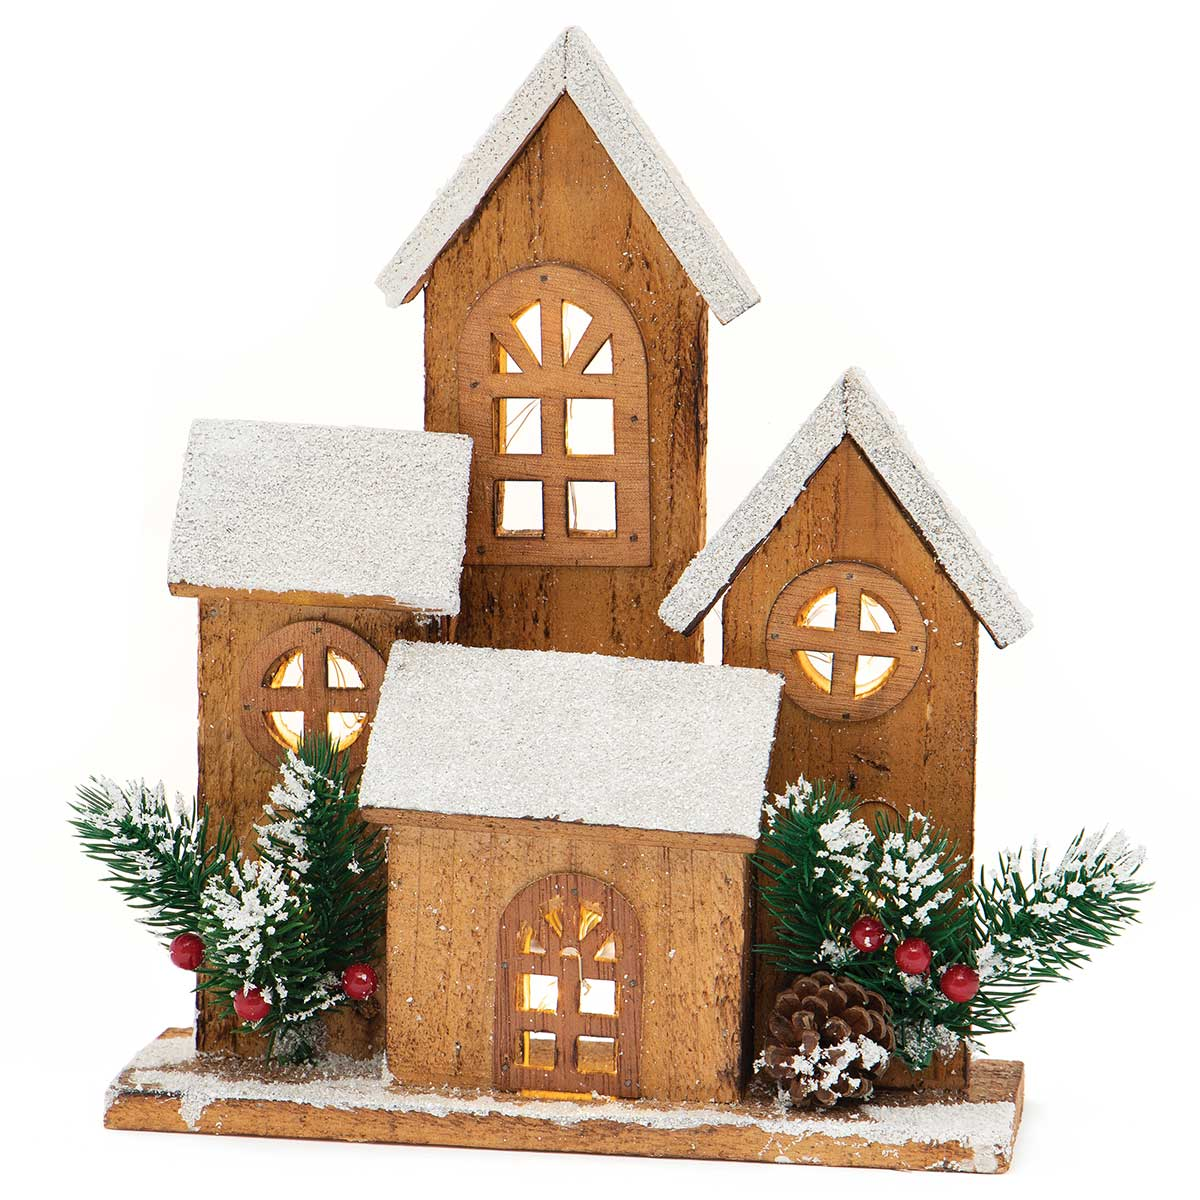 ALPINE WOOD VILLAGE X4 WITH SNOW, GLITTER, PINECONES AND